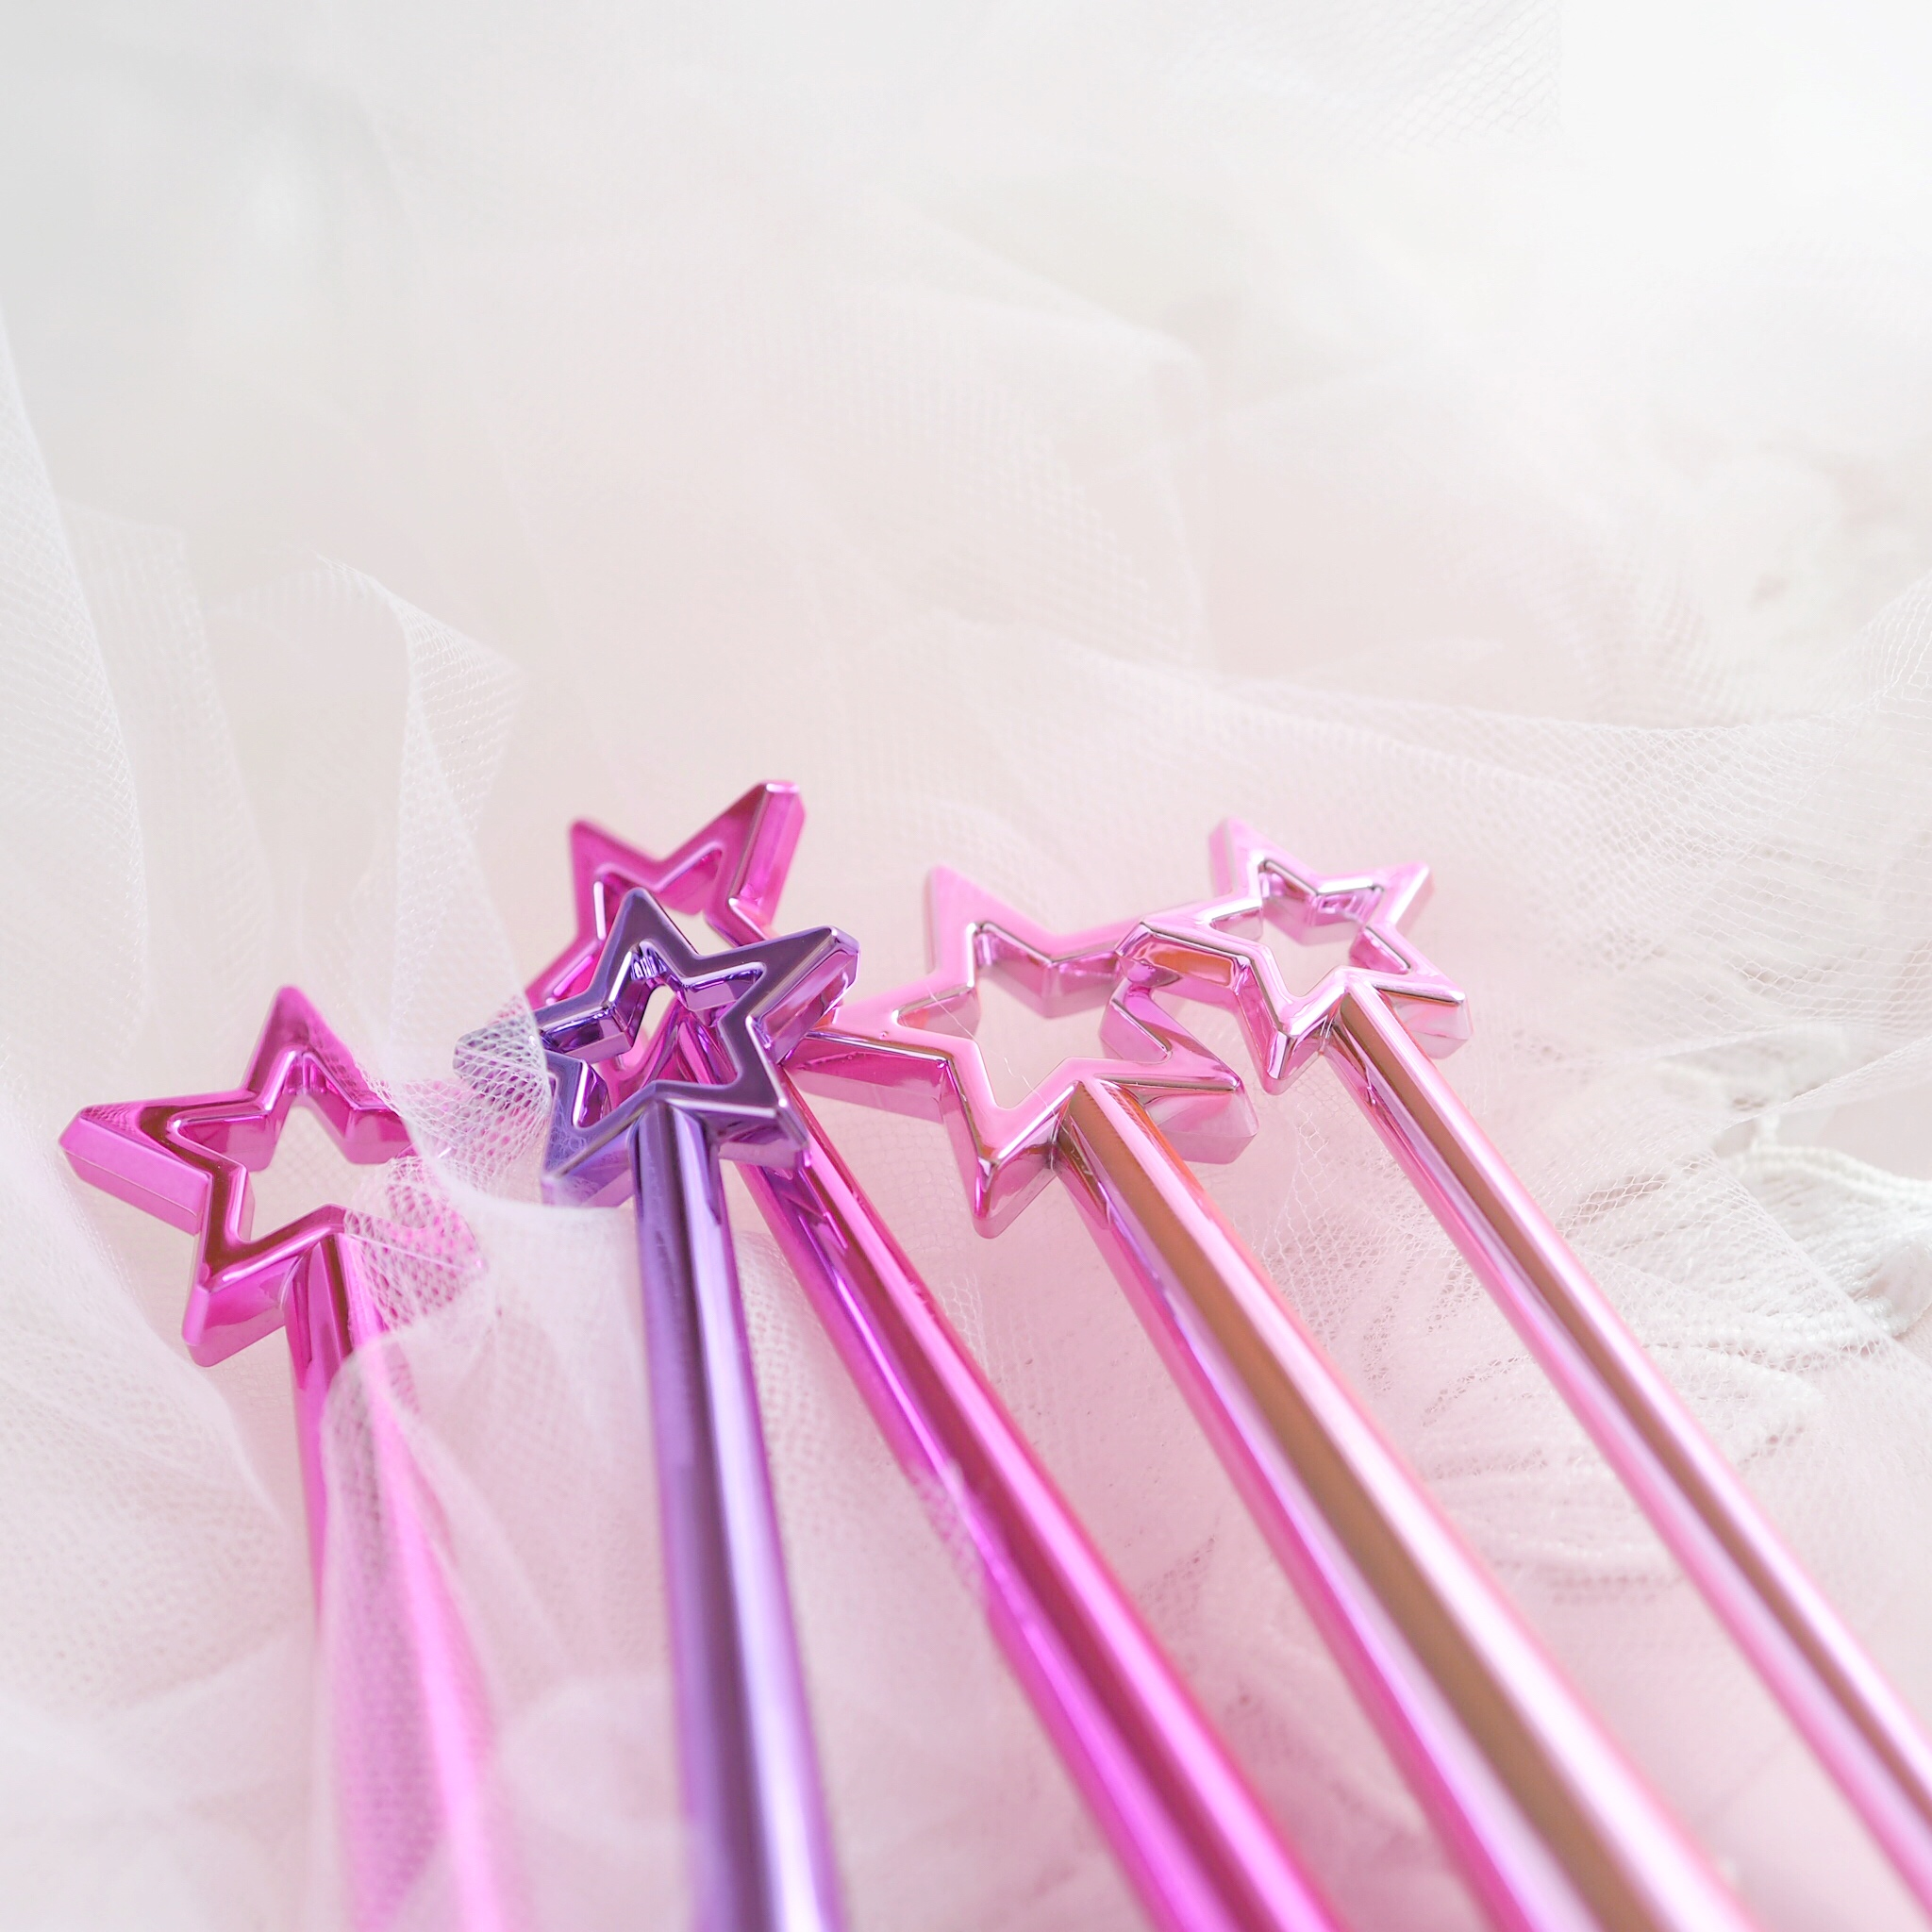 Pretty Things & Fairy Wings Makeup Brushes | Tarte Love, Trust & Fairy Dust Vault